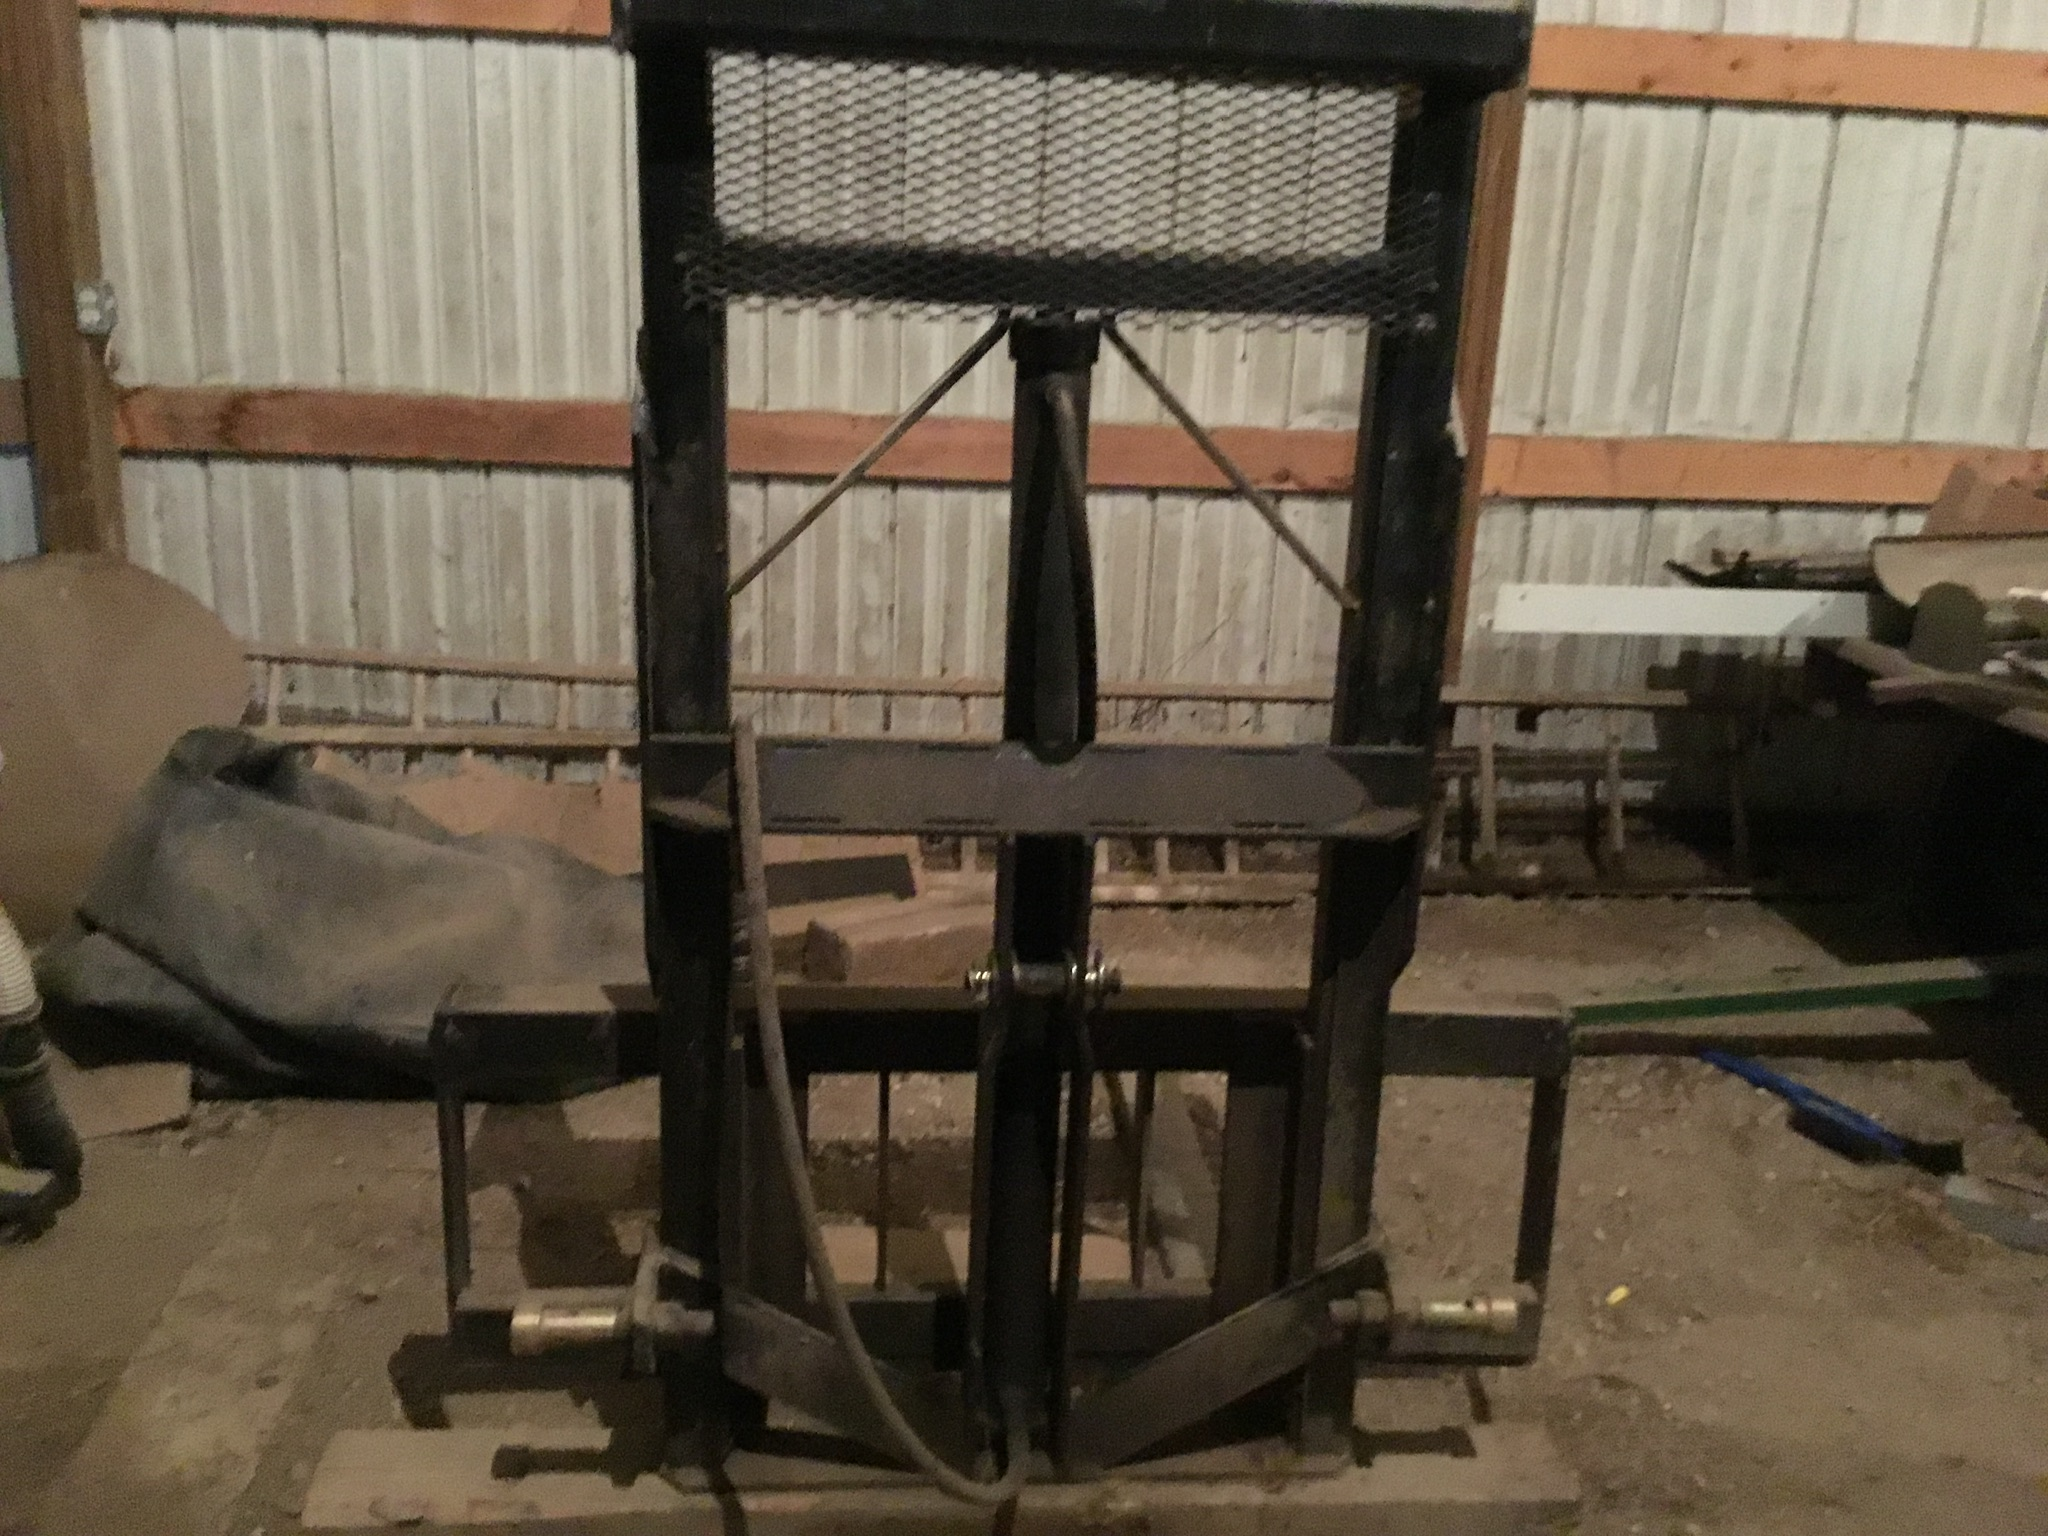 Woods Model 40 3Pt. Hitch Fork Lift 2 Stage, Serial #4560